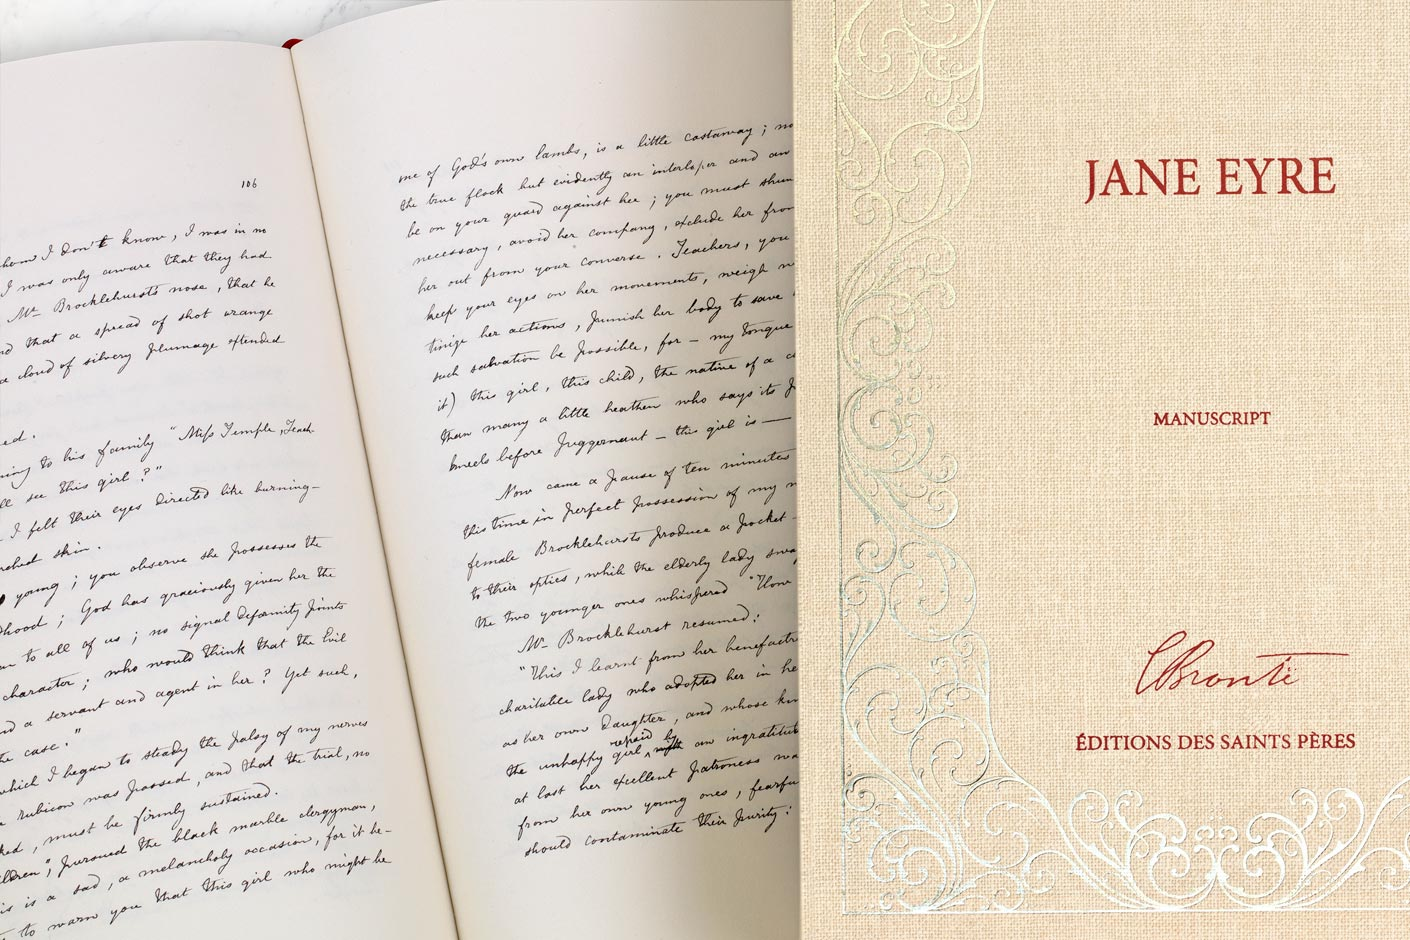 Jane Eyre : manuscript and slipcase